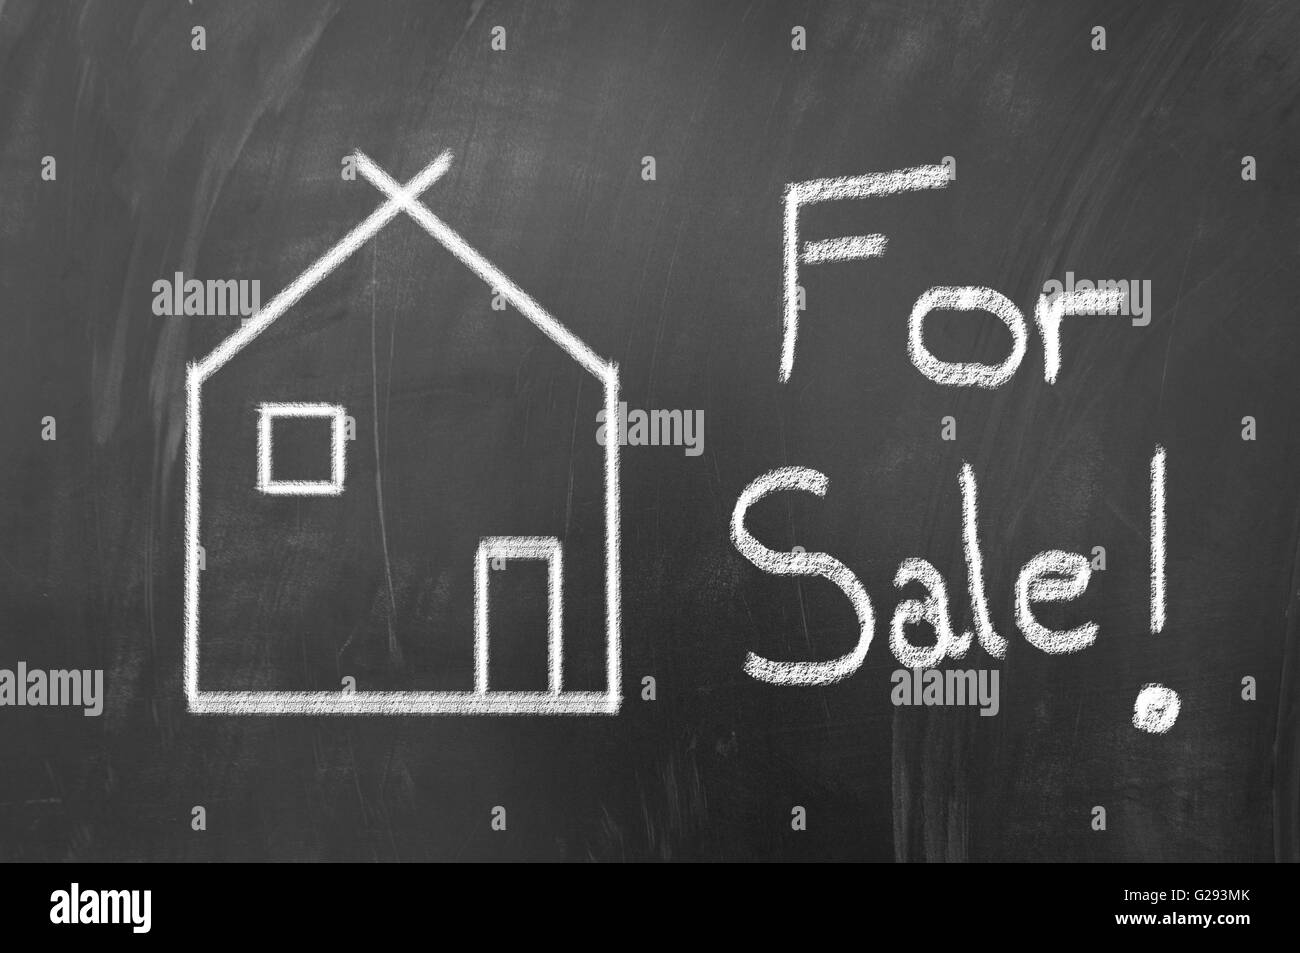 House for sale concept made with white chalk on blackboard - Stock Image